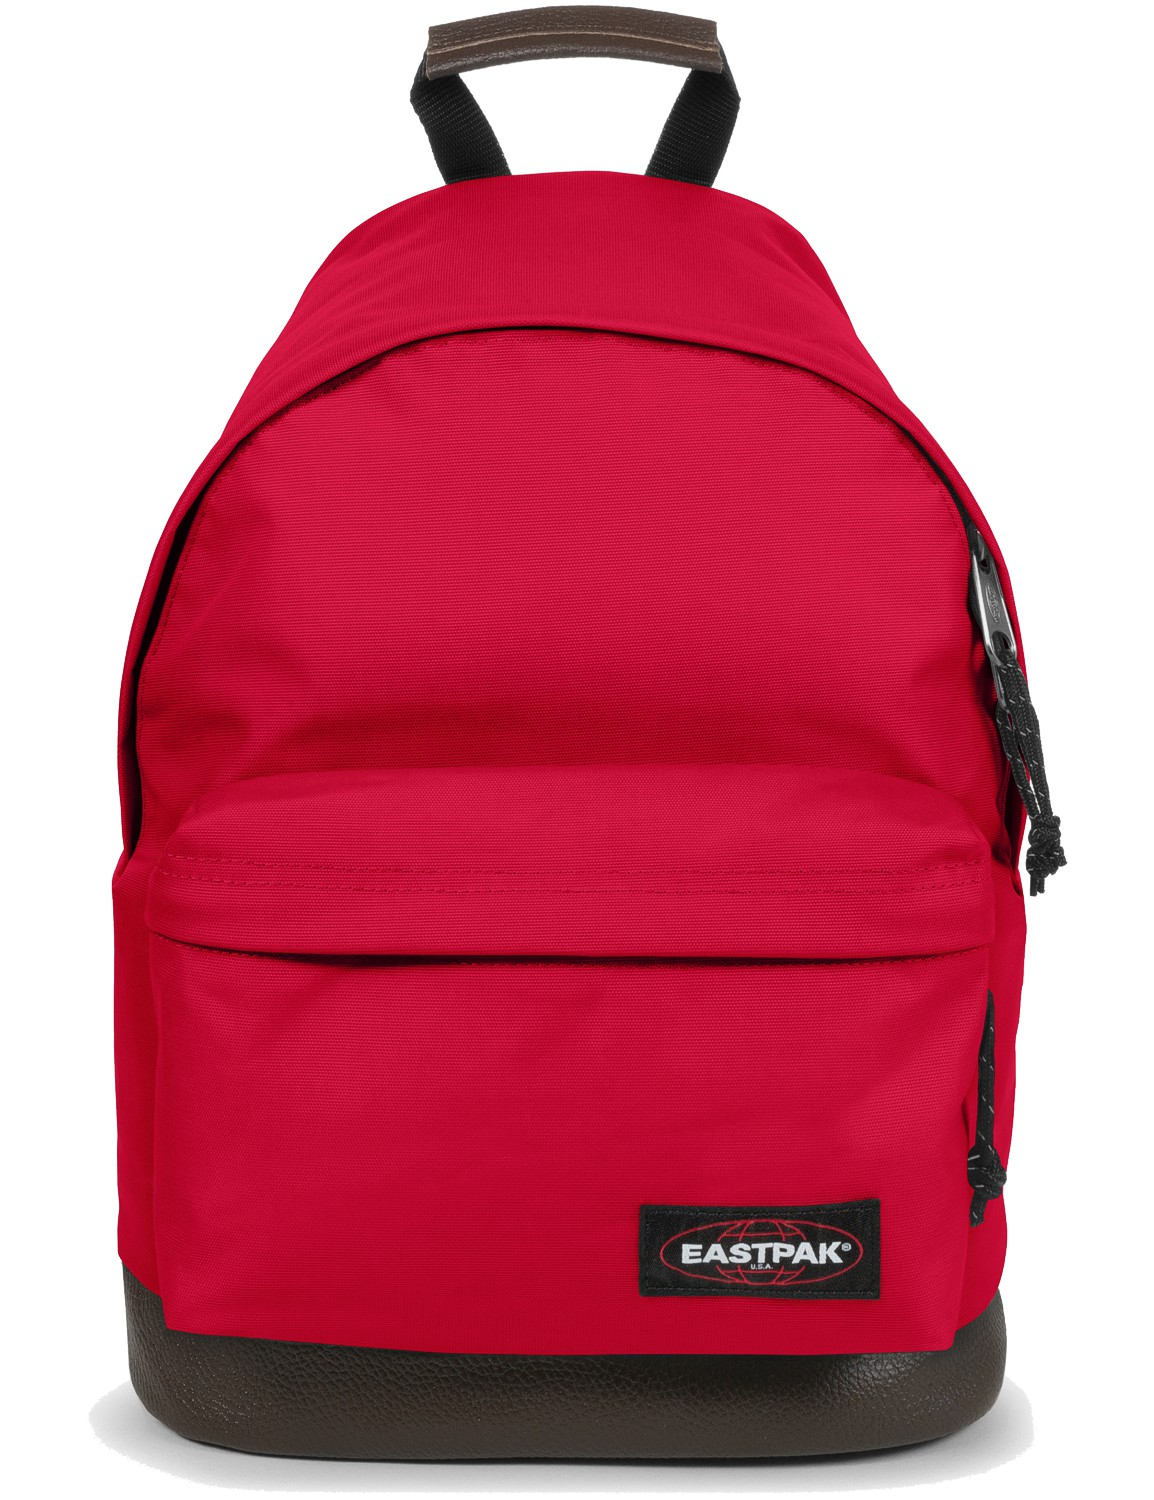 Eastpak Rucksack mit Lederboden »Wyoming« Sailor Red Rot